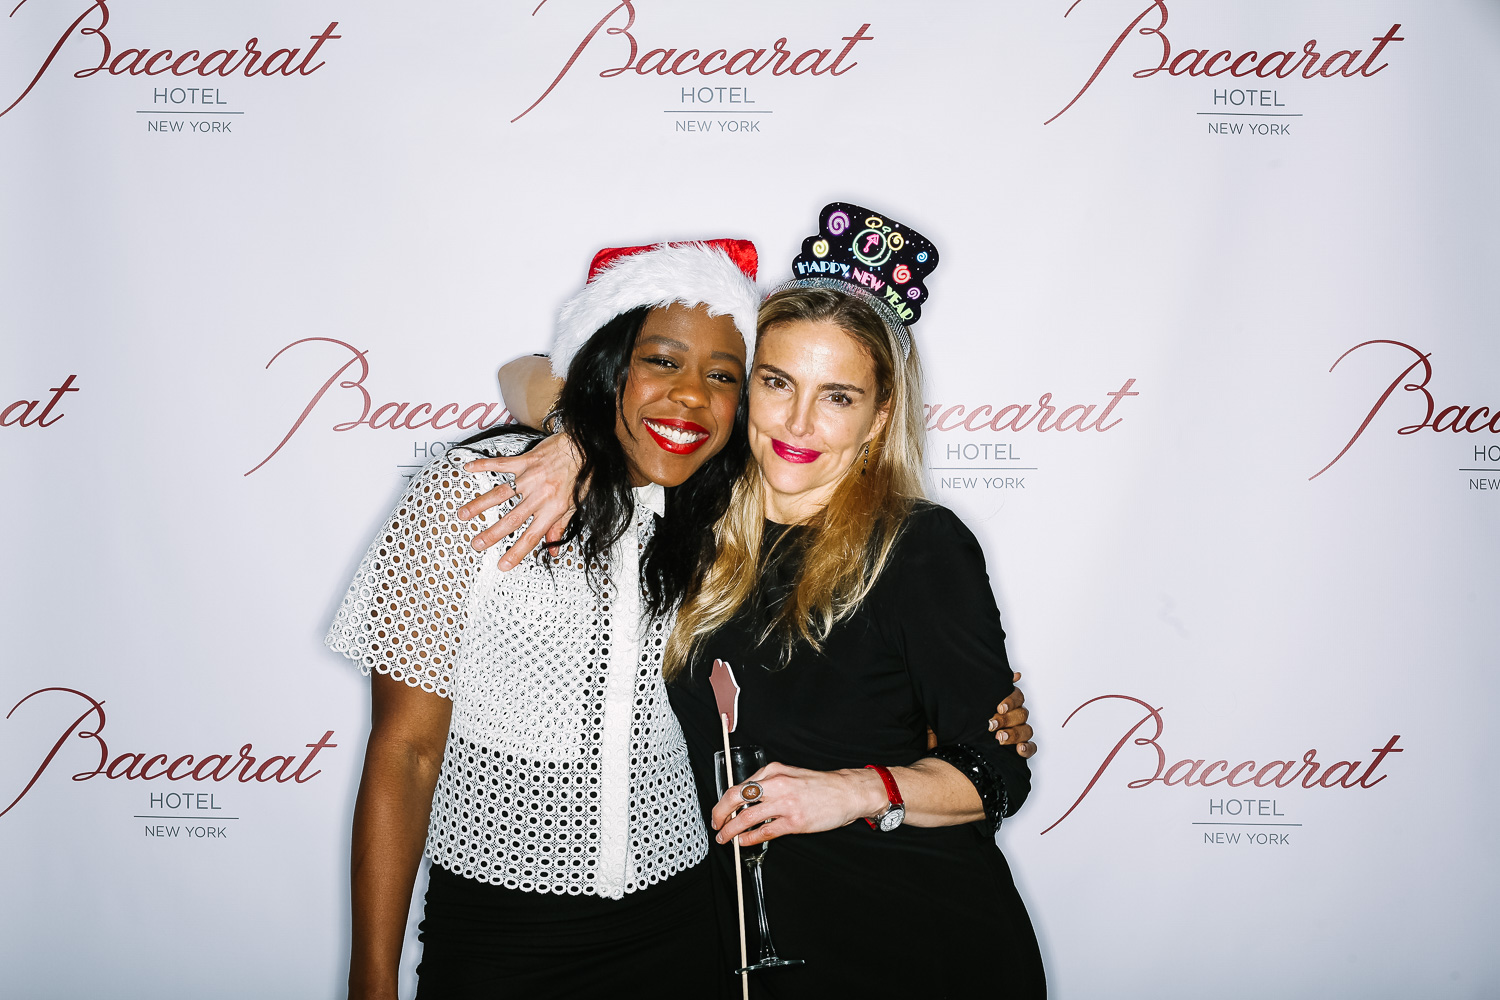 Baccarat Hotel Holiday Party